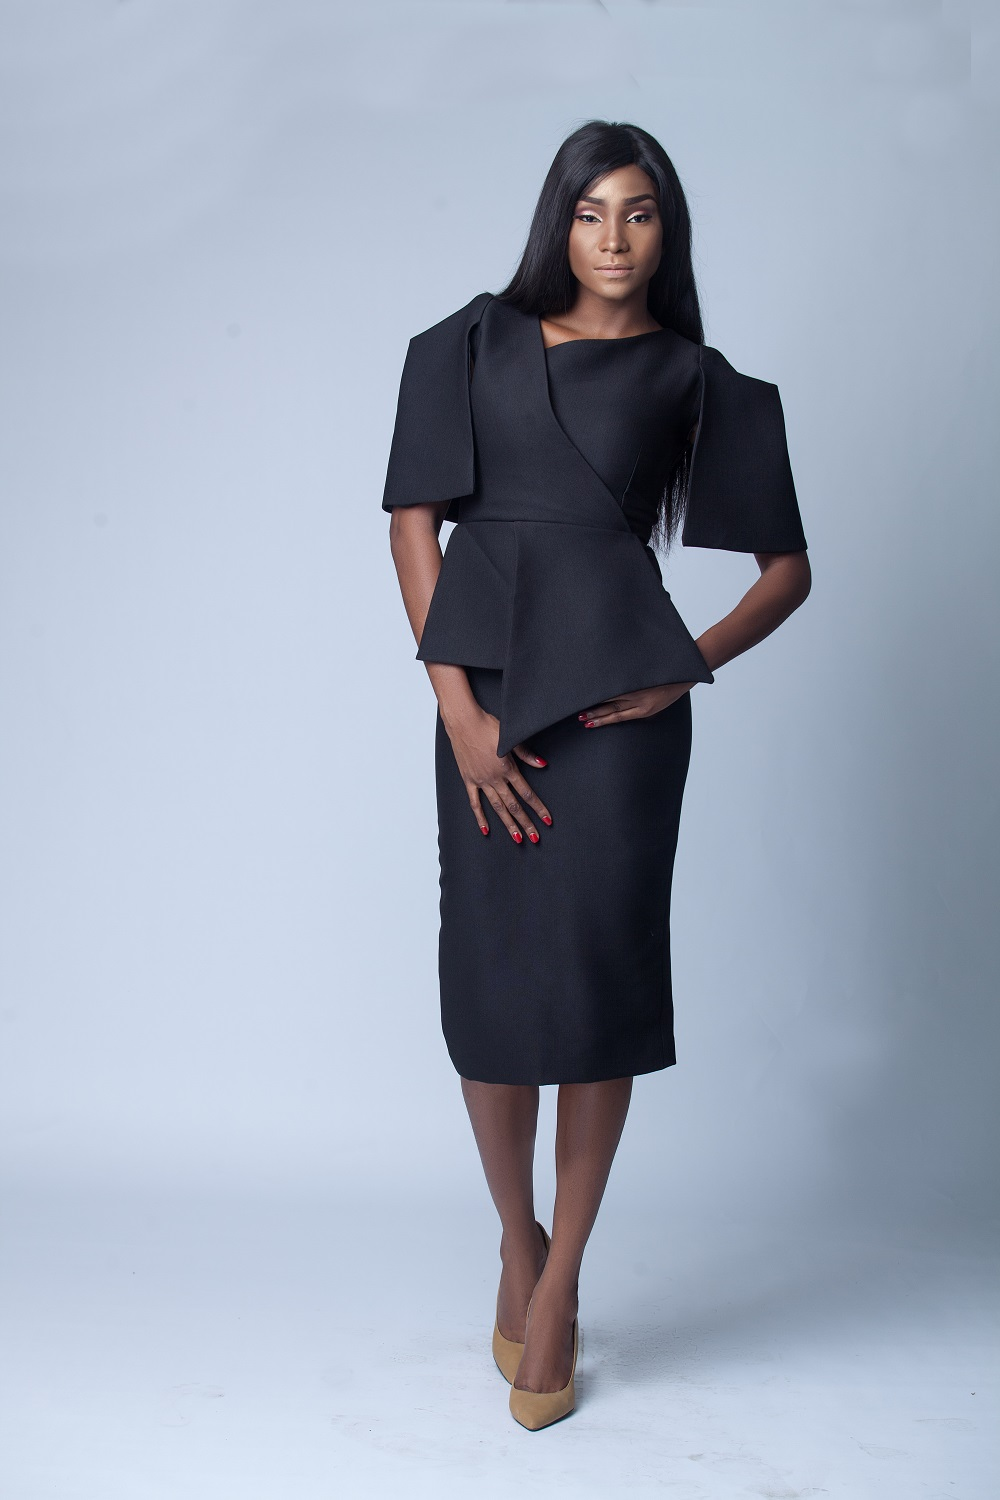 Lady Biba Just Released a Stylish New Collection for #LadyBosses